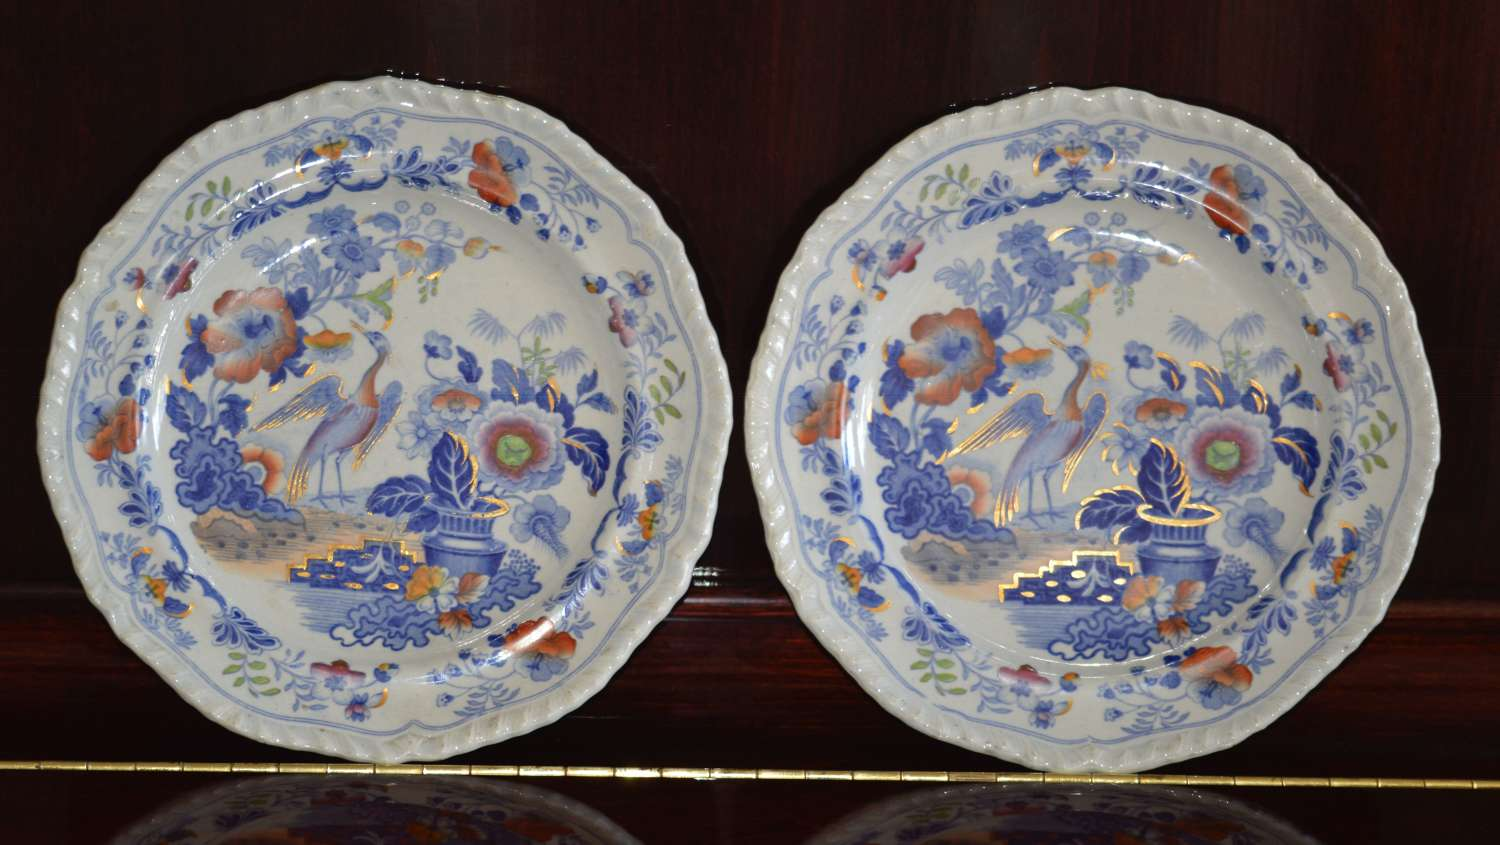 A Pair of 19th Century Imrov'd Canton China Plates